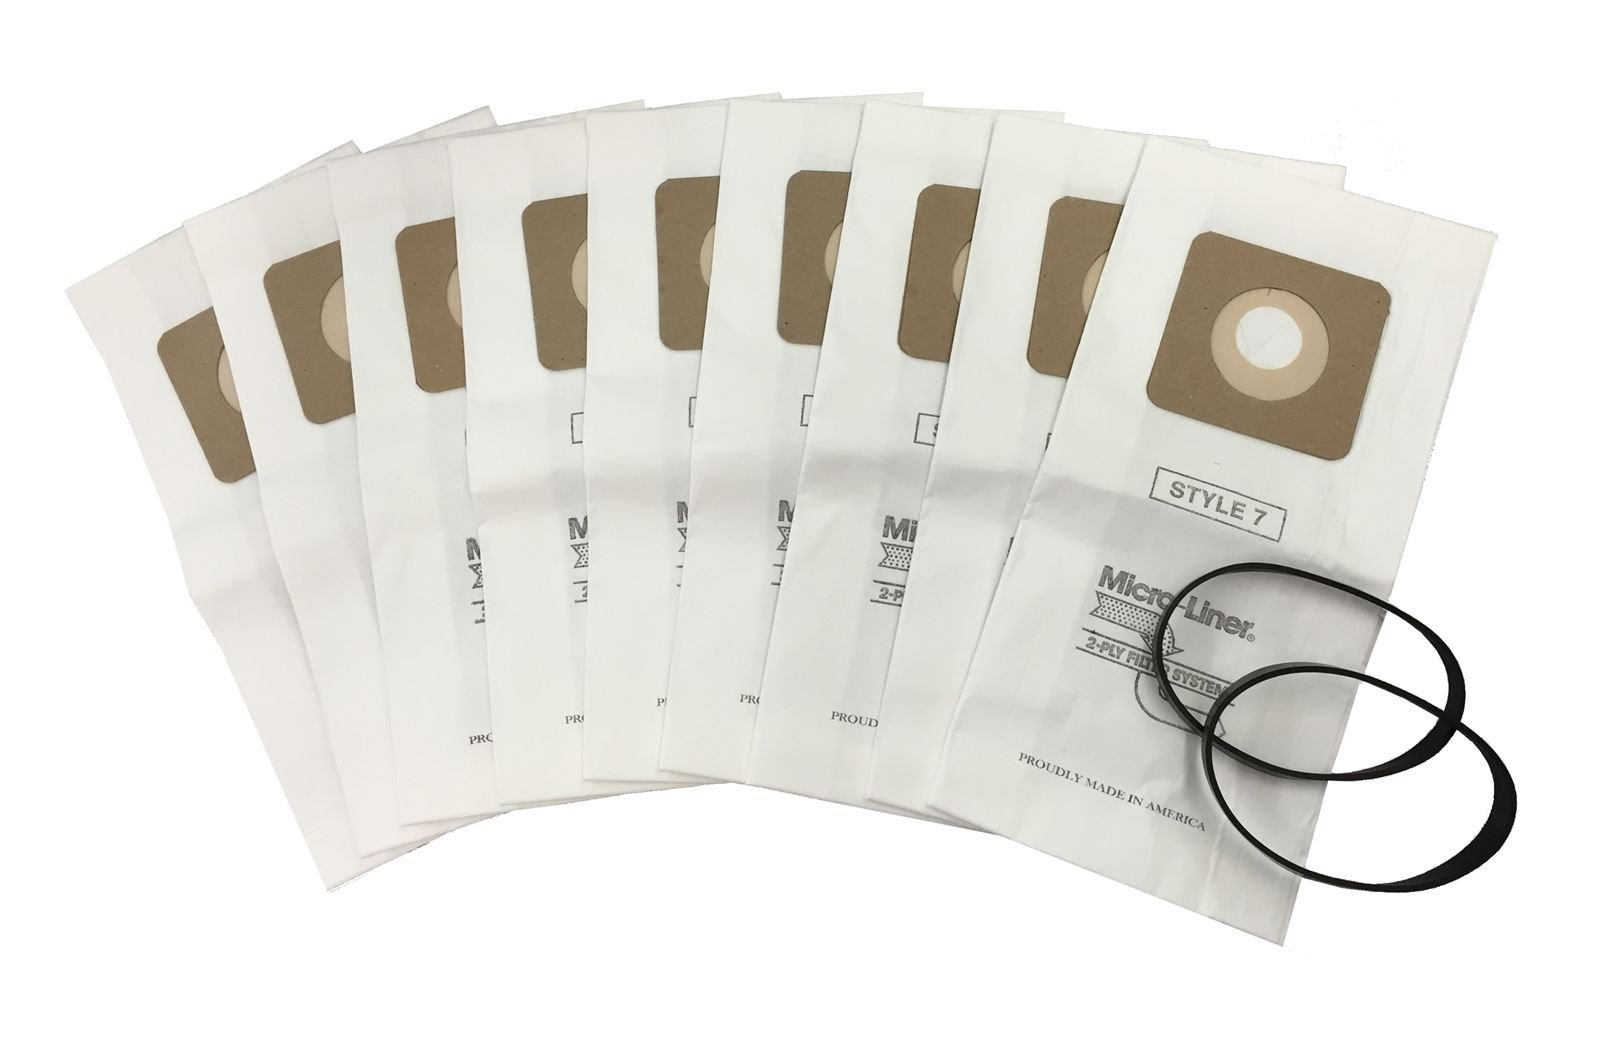 9 VACUUM BAGS & 2 BELTS for BISSELL STYLE 1 & 7, 30861 MICRO FILTRATION